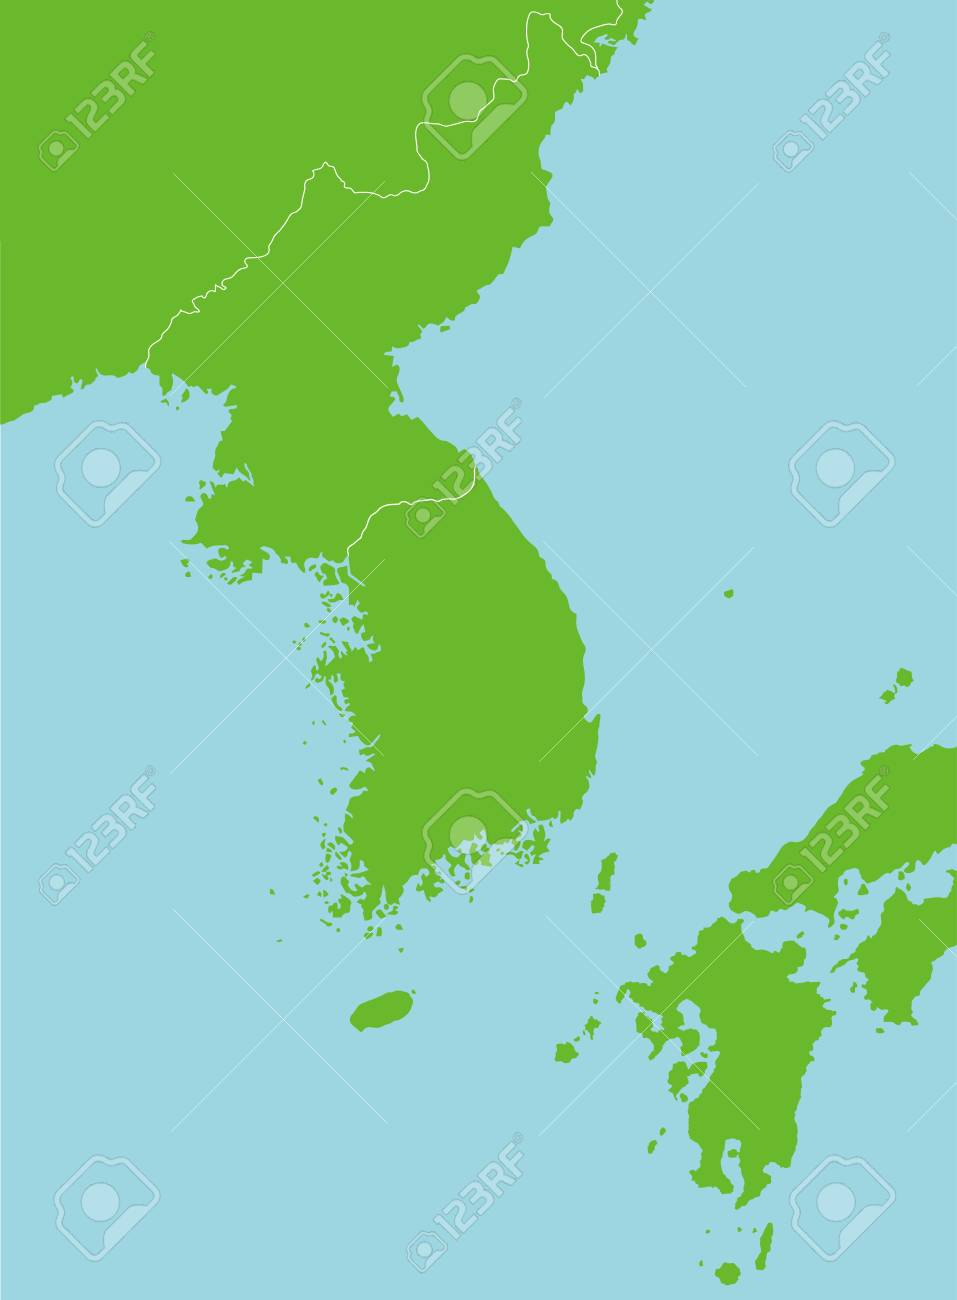 Korean peninsula and far east countries map blank map / no text on caspian sea map, mongolia map, germany map, himalayan mountains map, japan map, taiwan map, huang he river map, korean war 38th parallel korea map, sichuan basin map, gobi desert map, indus river map, ganges river map, yellow sea map, vietnam map, indonesia map, china map, indian ocean map, 38th parallel north map, outer rim map, plateau of tibet map,